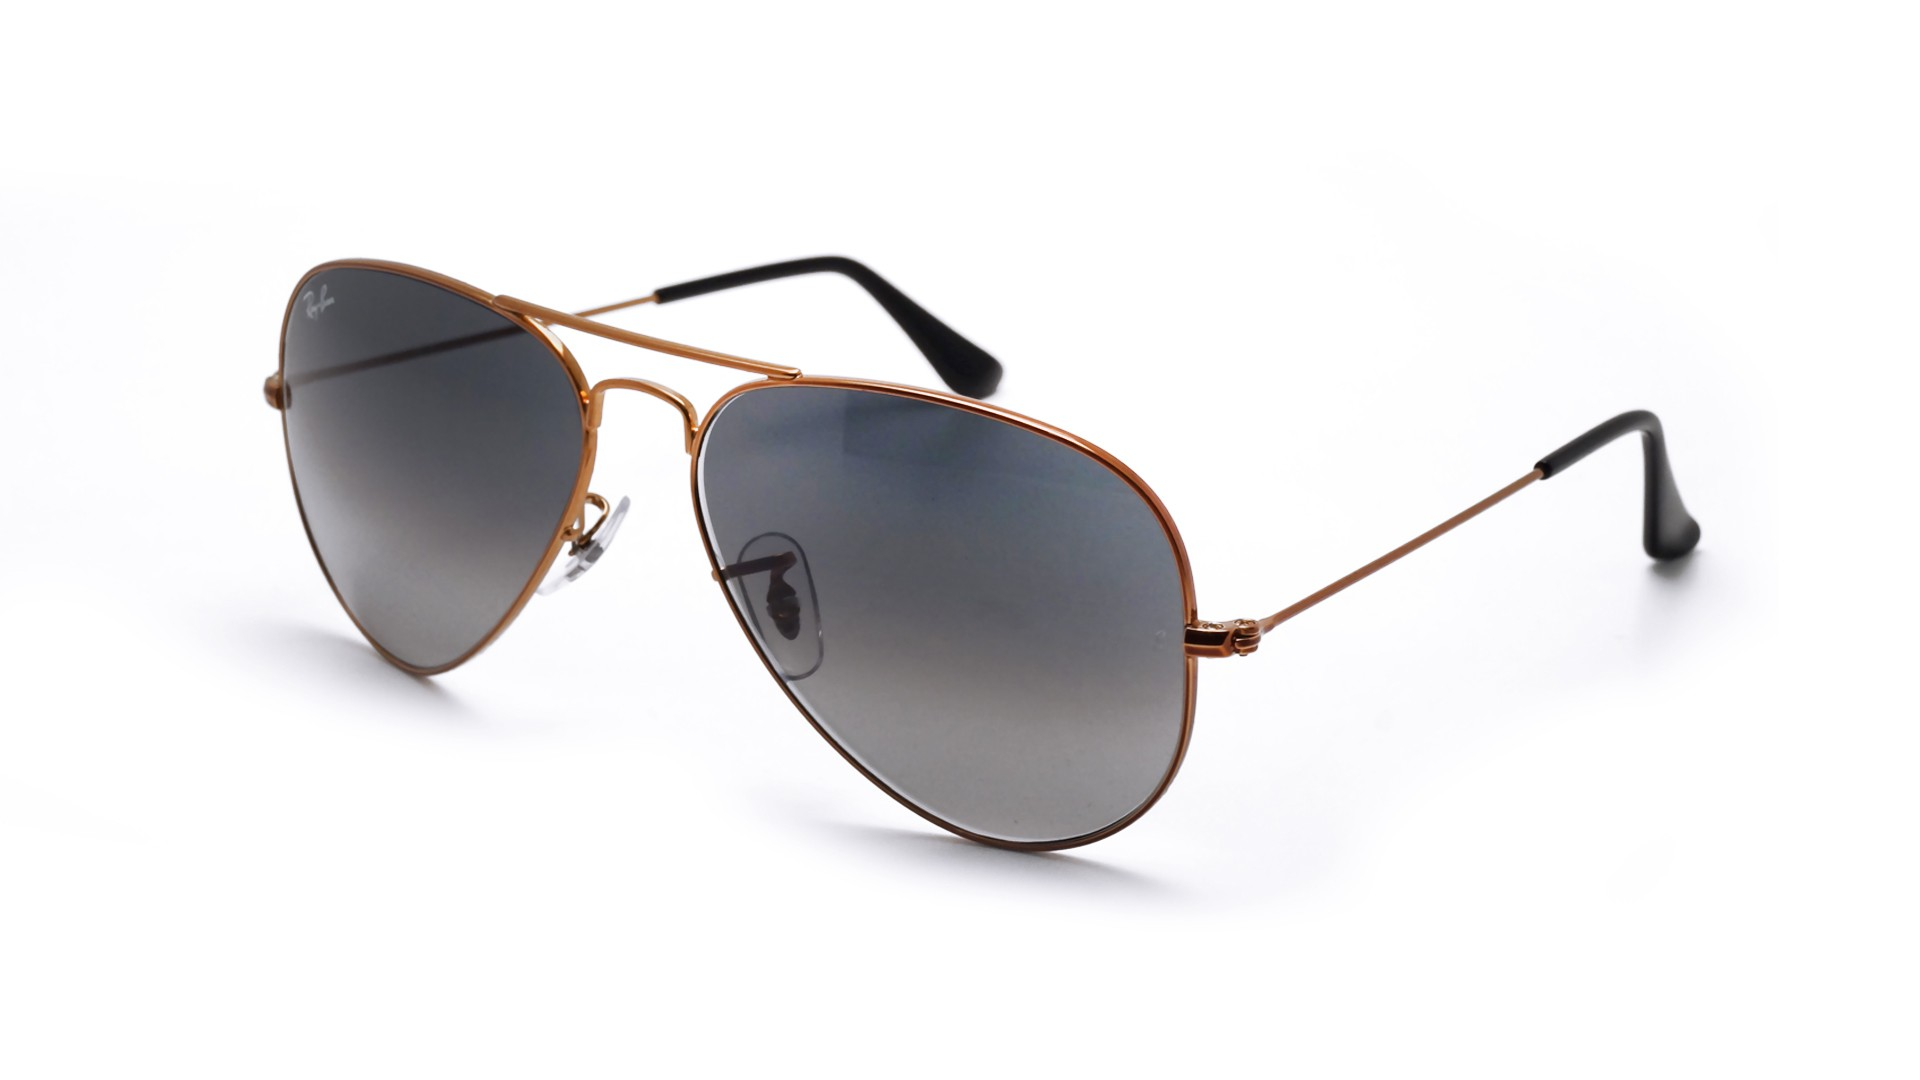 2af93dd9e48c Sunglasses Ray-Ban Aviator Large Metal Brown RB3025 197/71 58-14 Large  Gradient